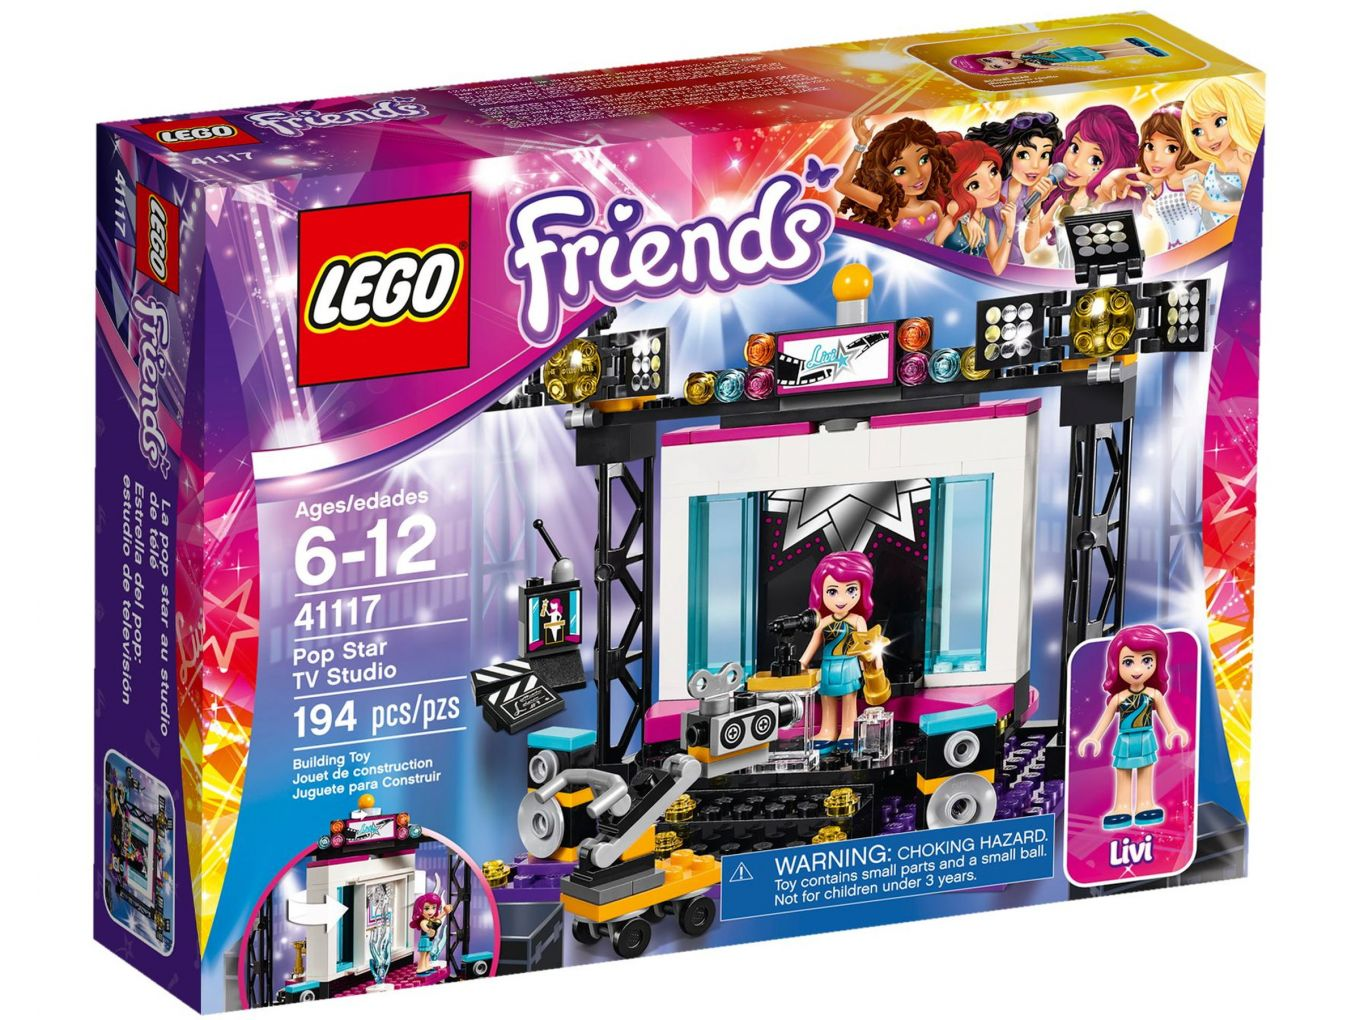 LEGO Friends 41117 Popster TV Studio